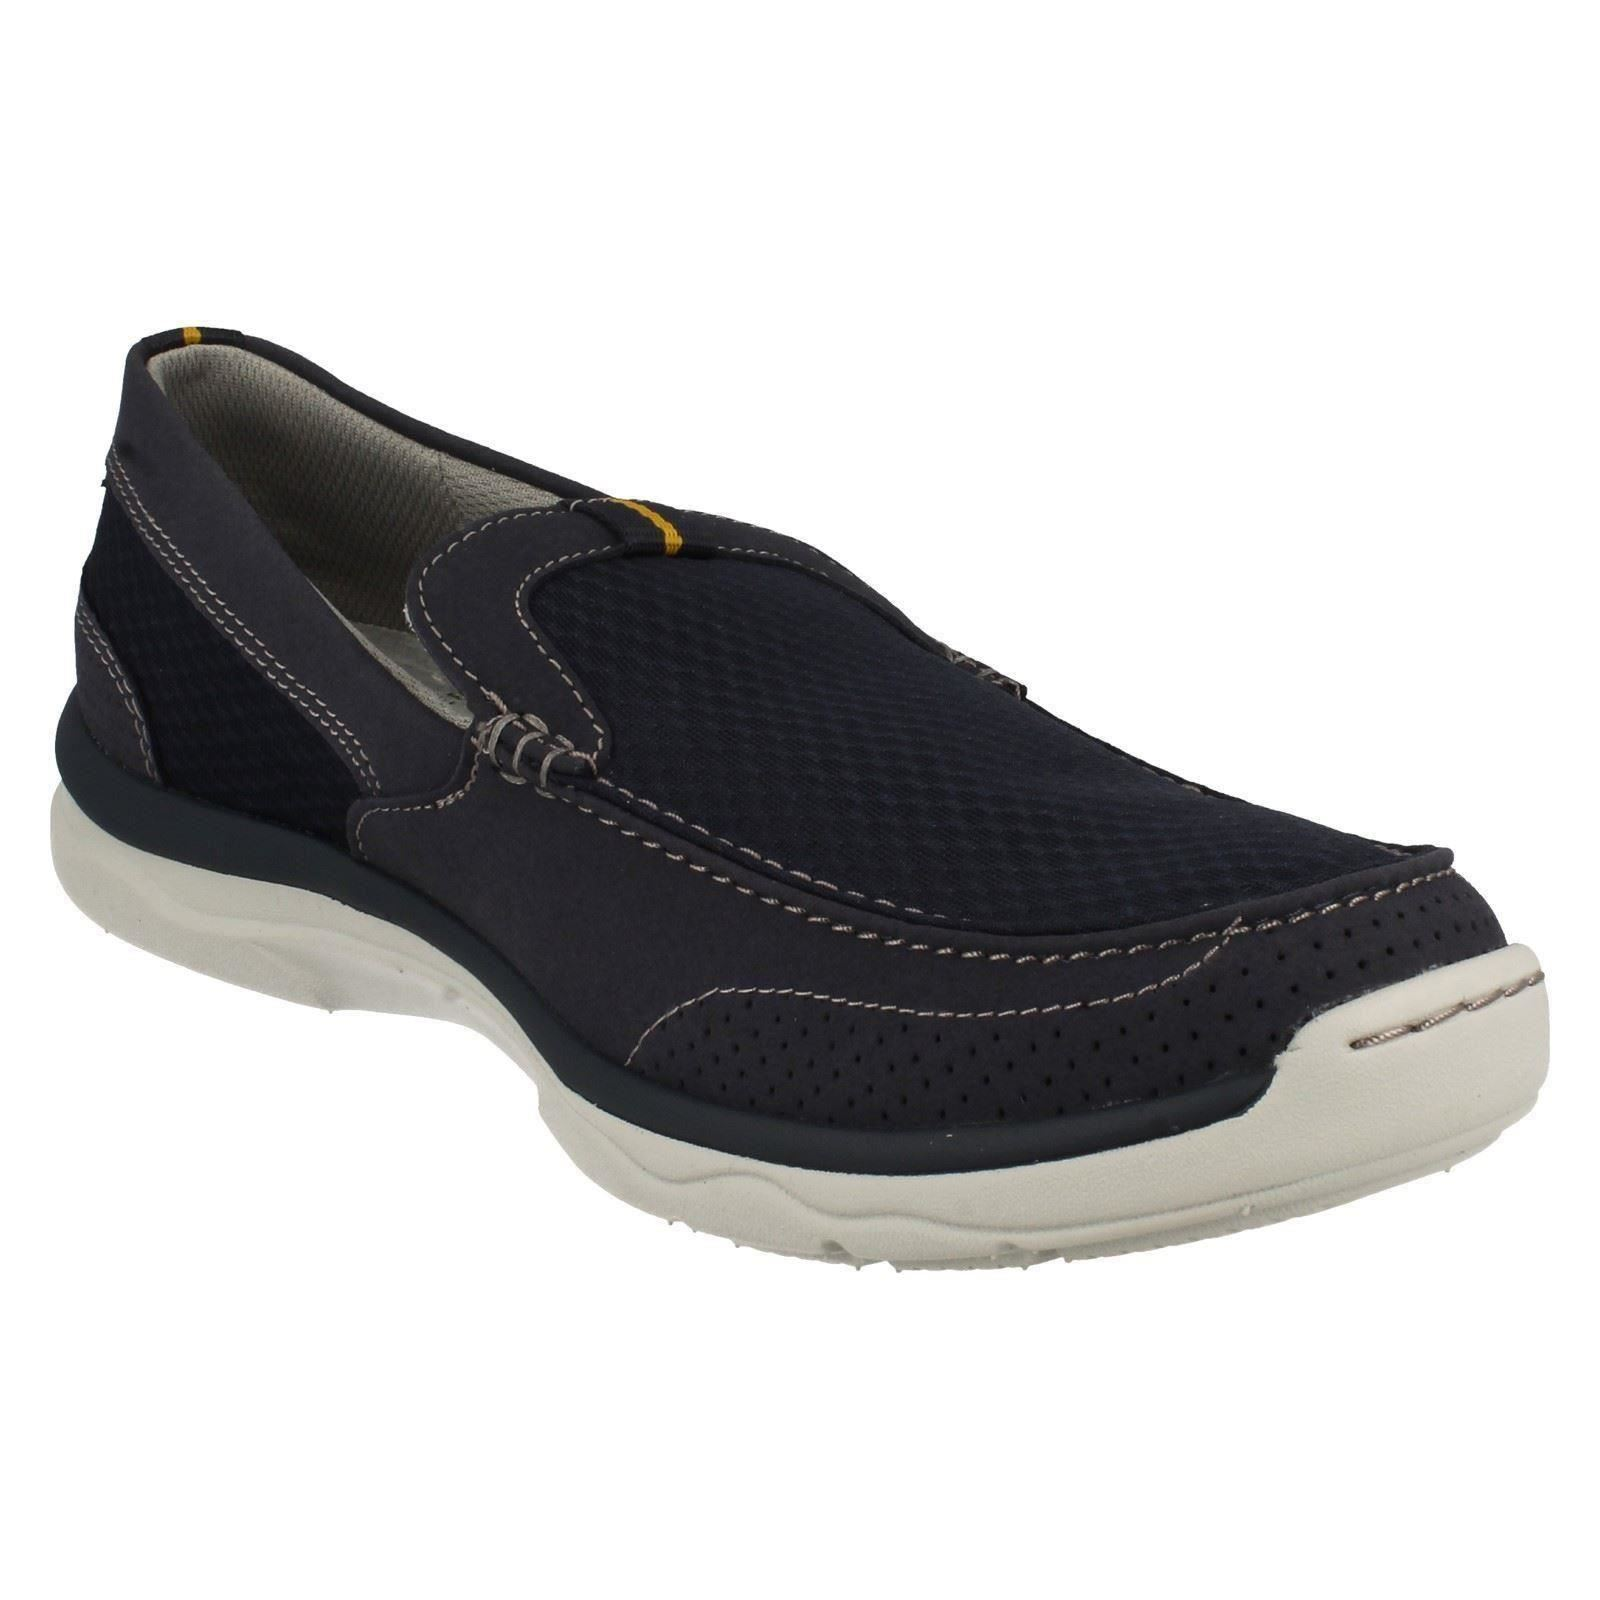 ' Uomo Clarks' Casual Marus Slip On Schuhes - Marus Casual Step a0bc76